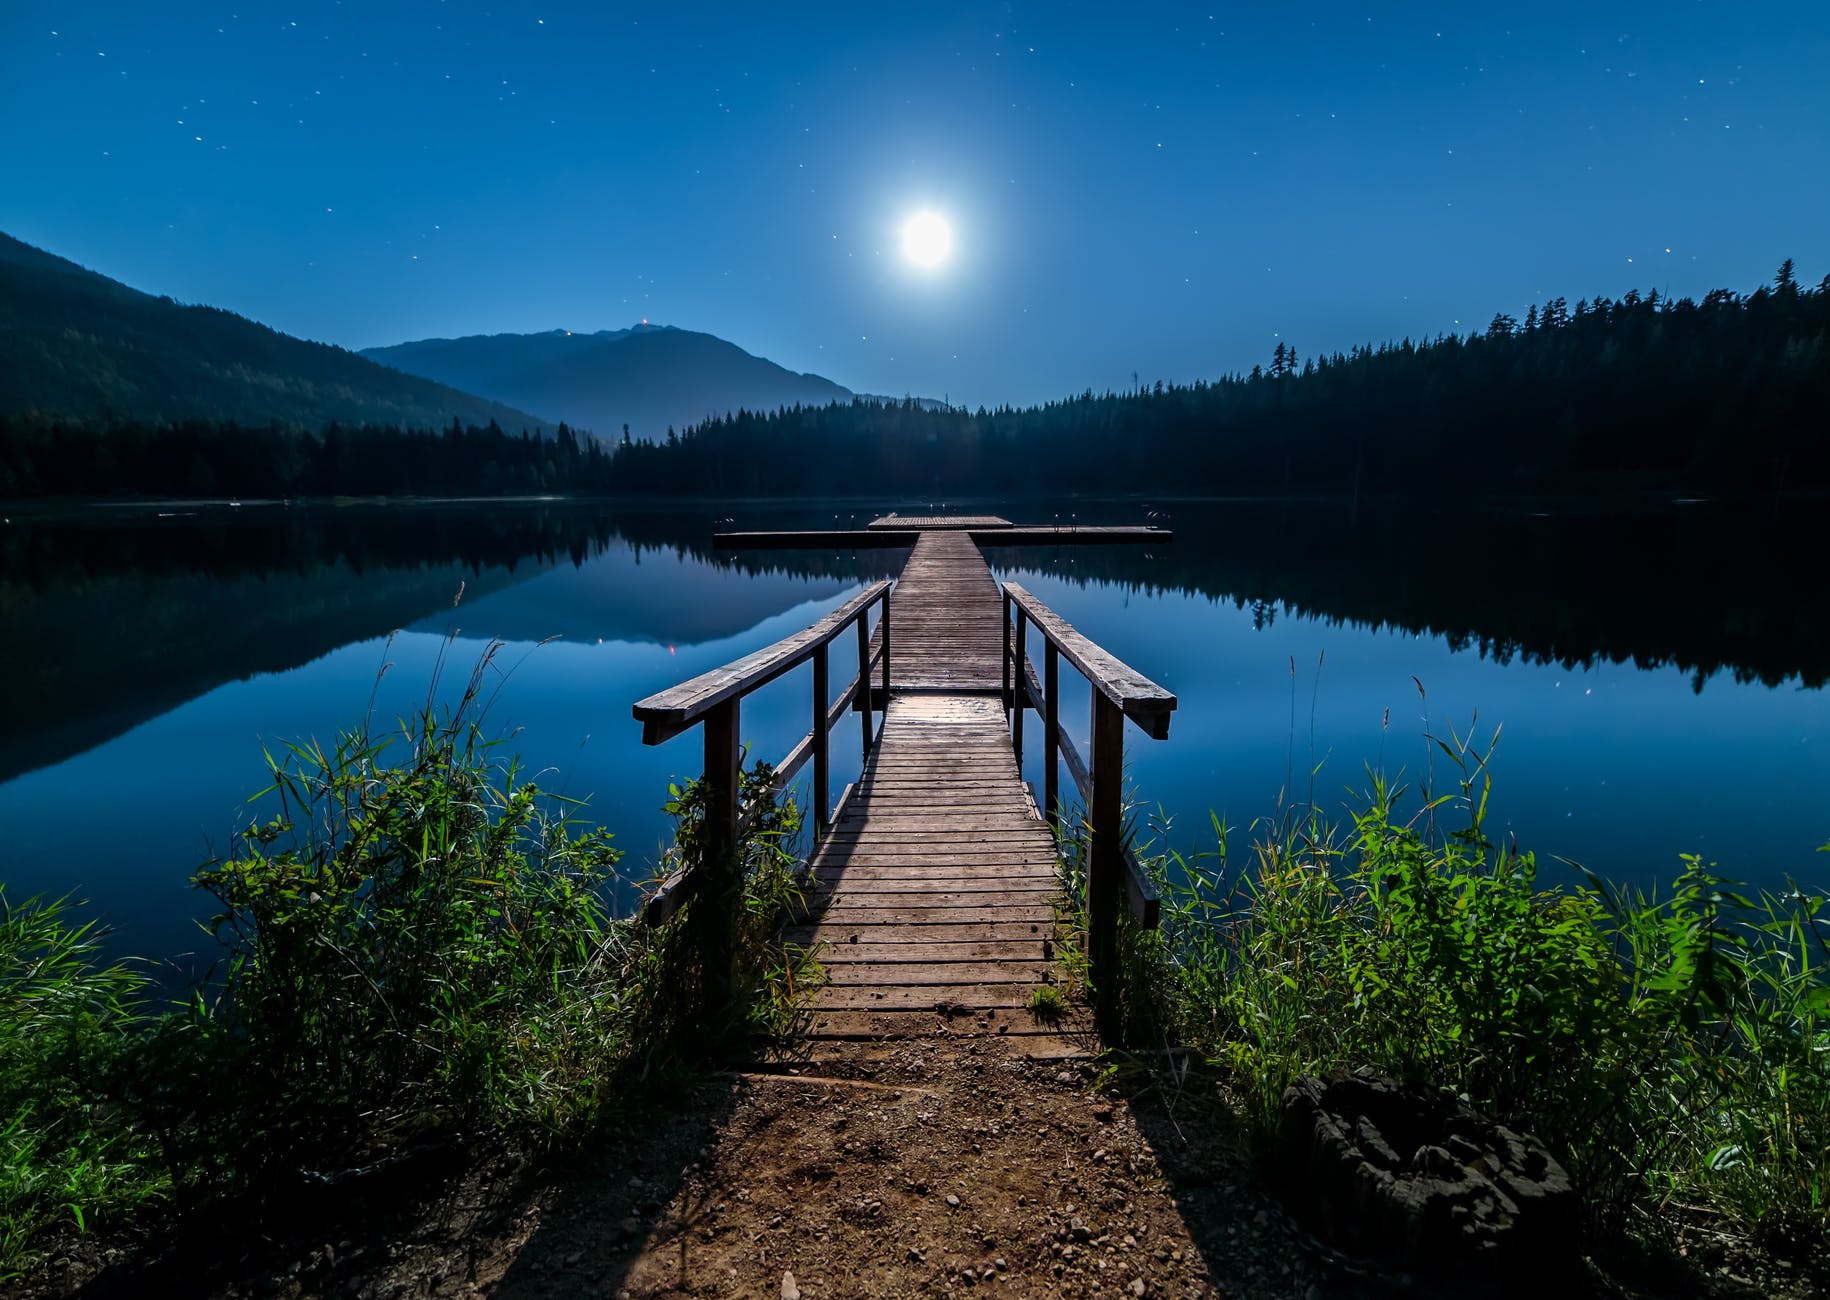 A brown dock leading towards a brightly moonlit lake. This symbolizes the peace and tranquility of the soul sanctuary in Berkeley, CA. A highly sensitive therapist can provide spritual guidance in this empath group at Joyful Empath.